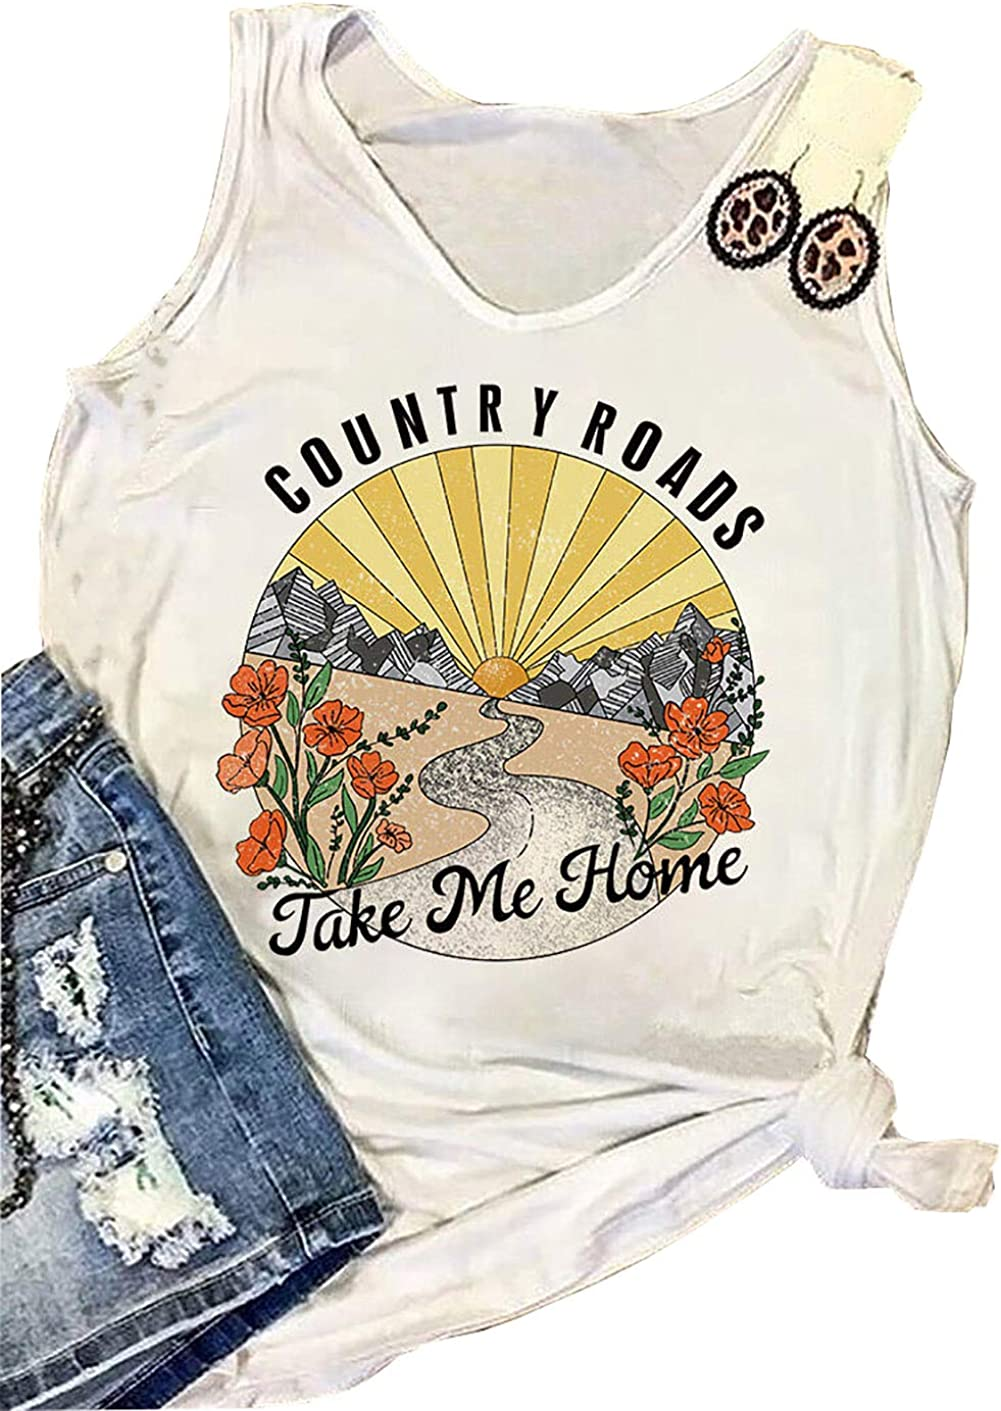 Country Roads Take Me Home Floral Tank Top for Women Hiking Mountain Sleeveless T Shirt Tees Camping Vest